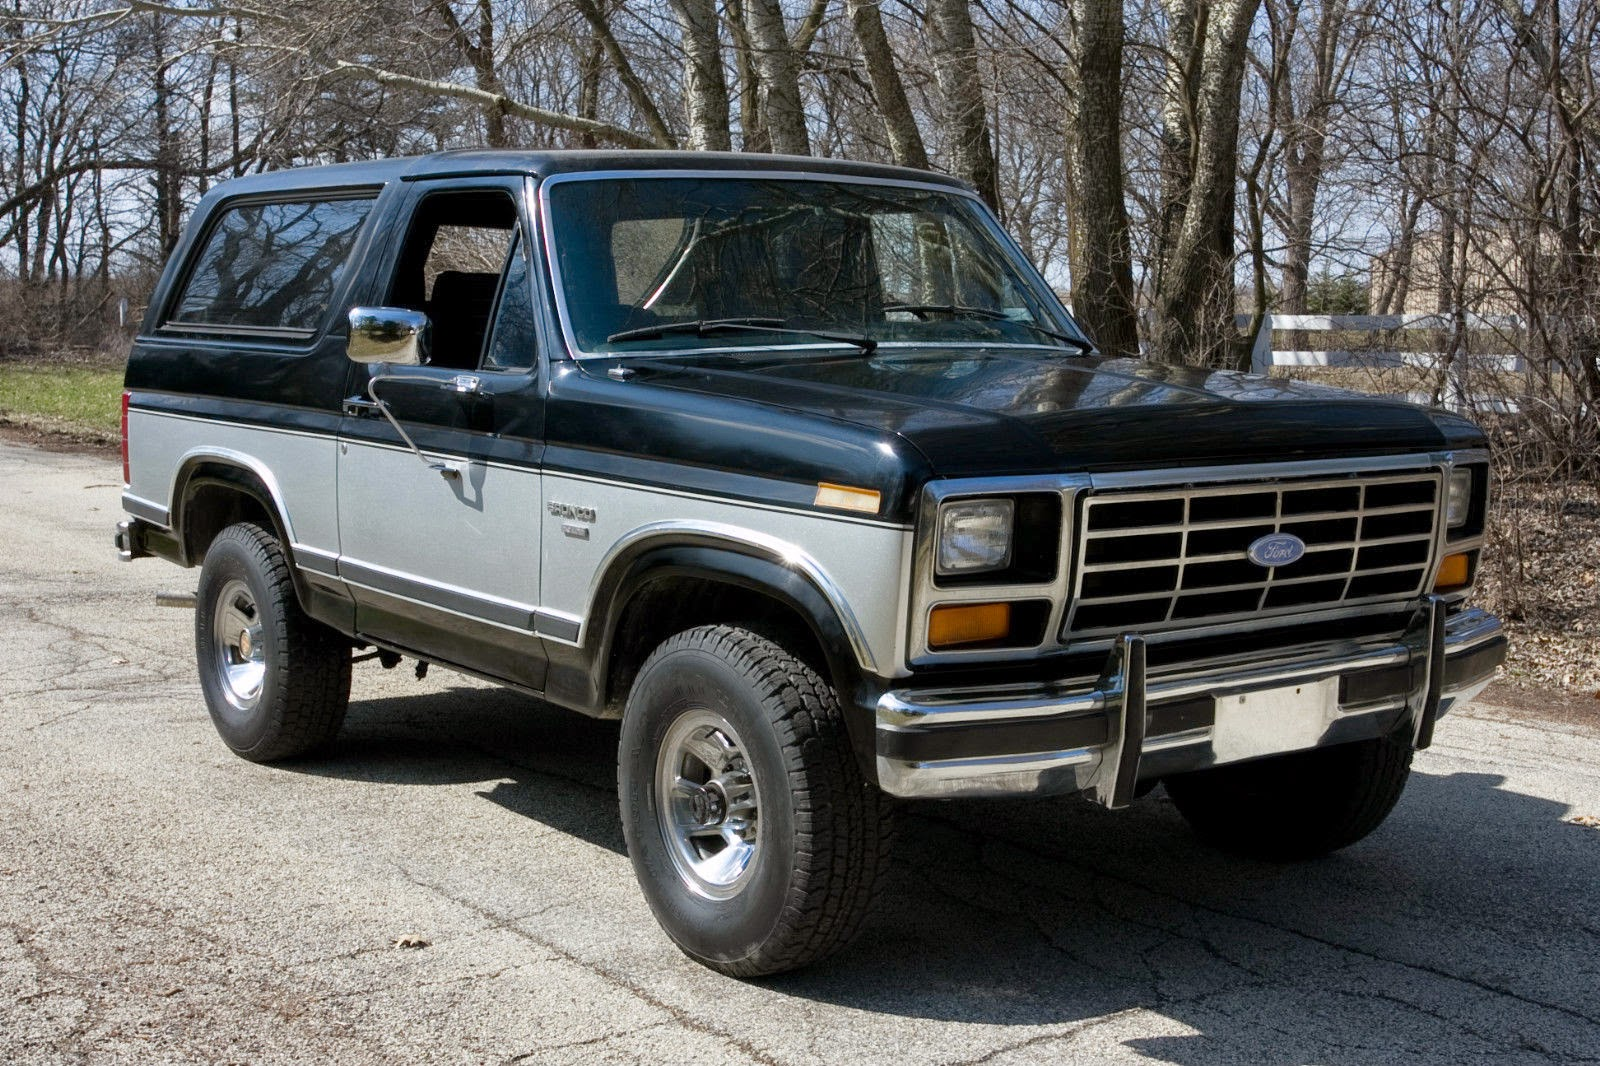 Craigslist Orange County >> Ford Bronco 1980 | 2017, 2018, 2019 Ford Price, Release Date, Reviews